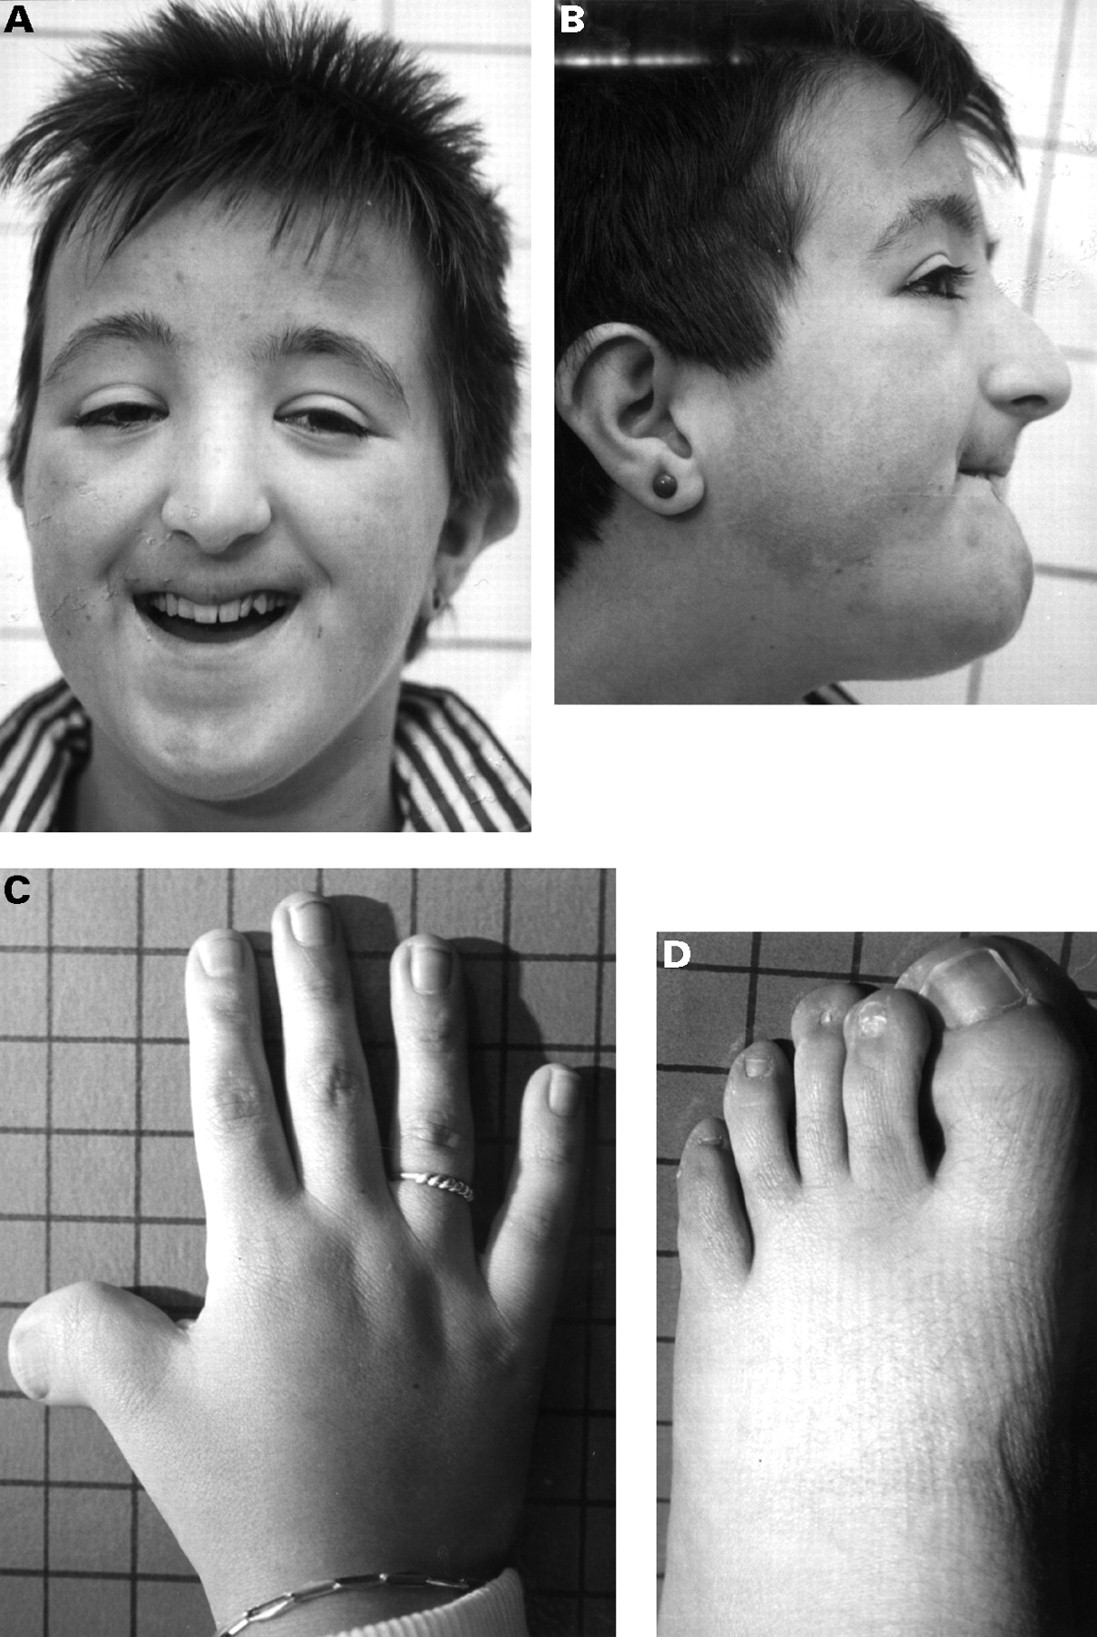 fragile x syndrome symptoms and investigation Fraxe syndrome fragile site, folic acid type x-linked mental retardation fragile xe syndrome people typically have the signs and symptoms seen.